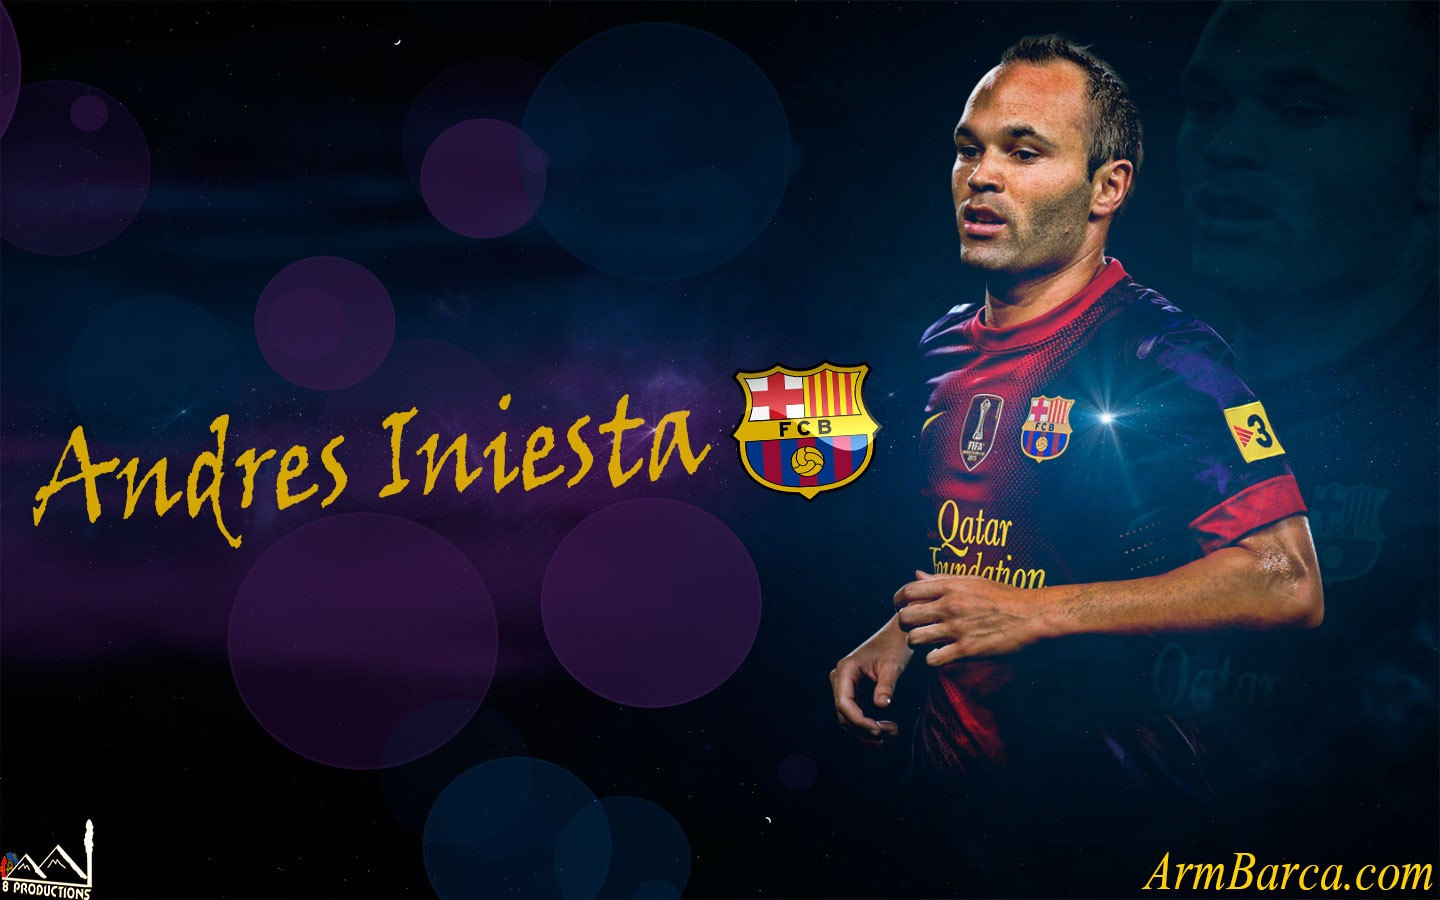 Messi, Ronaldo and Iniesta are finalists for Golden Ball Award – Los Angeles Soccer